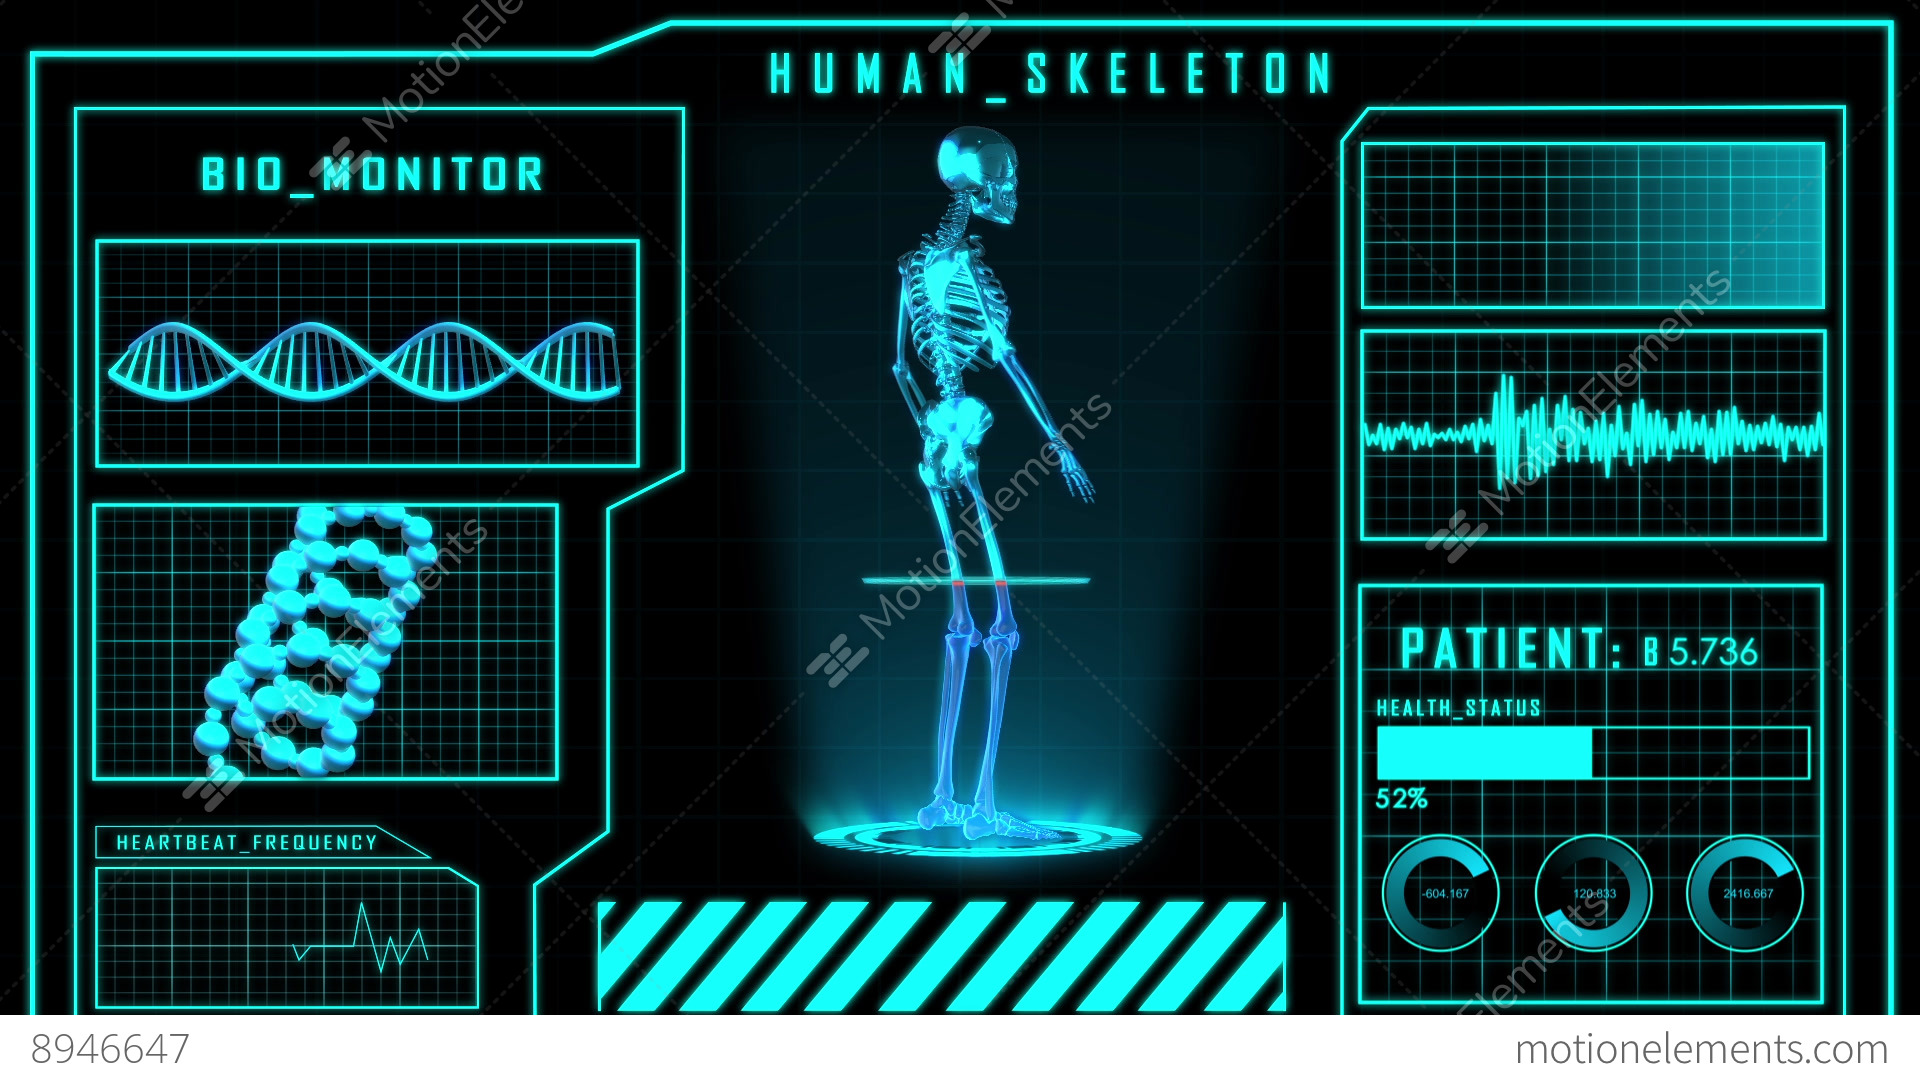 3d Hologram Wallpaper App Science Fiction Medical Design Element Human Skeleton Or